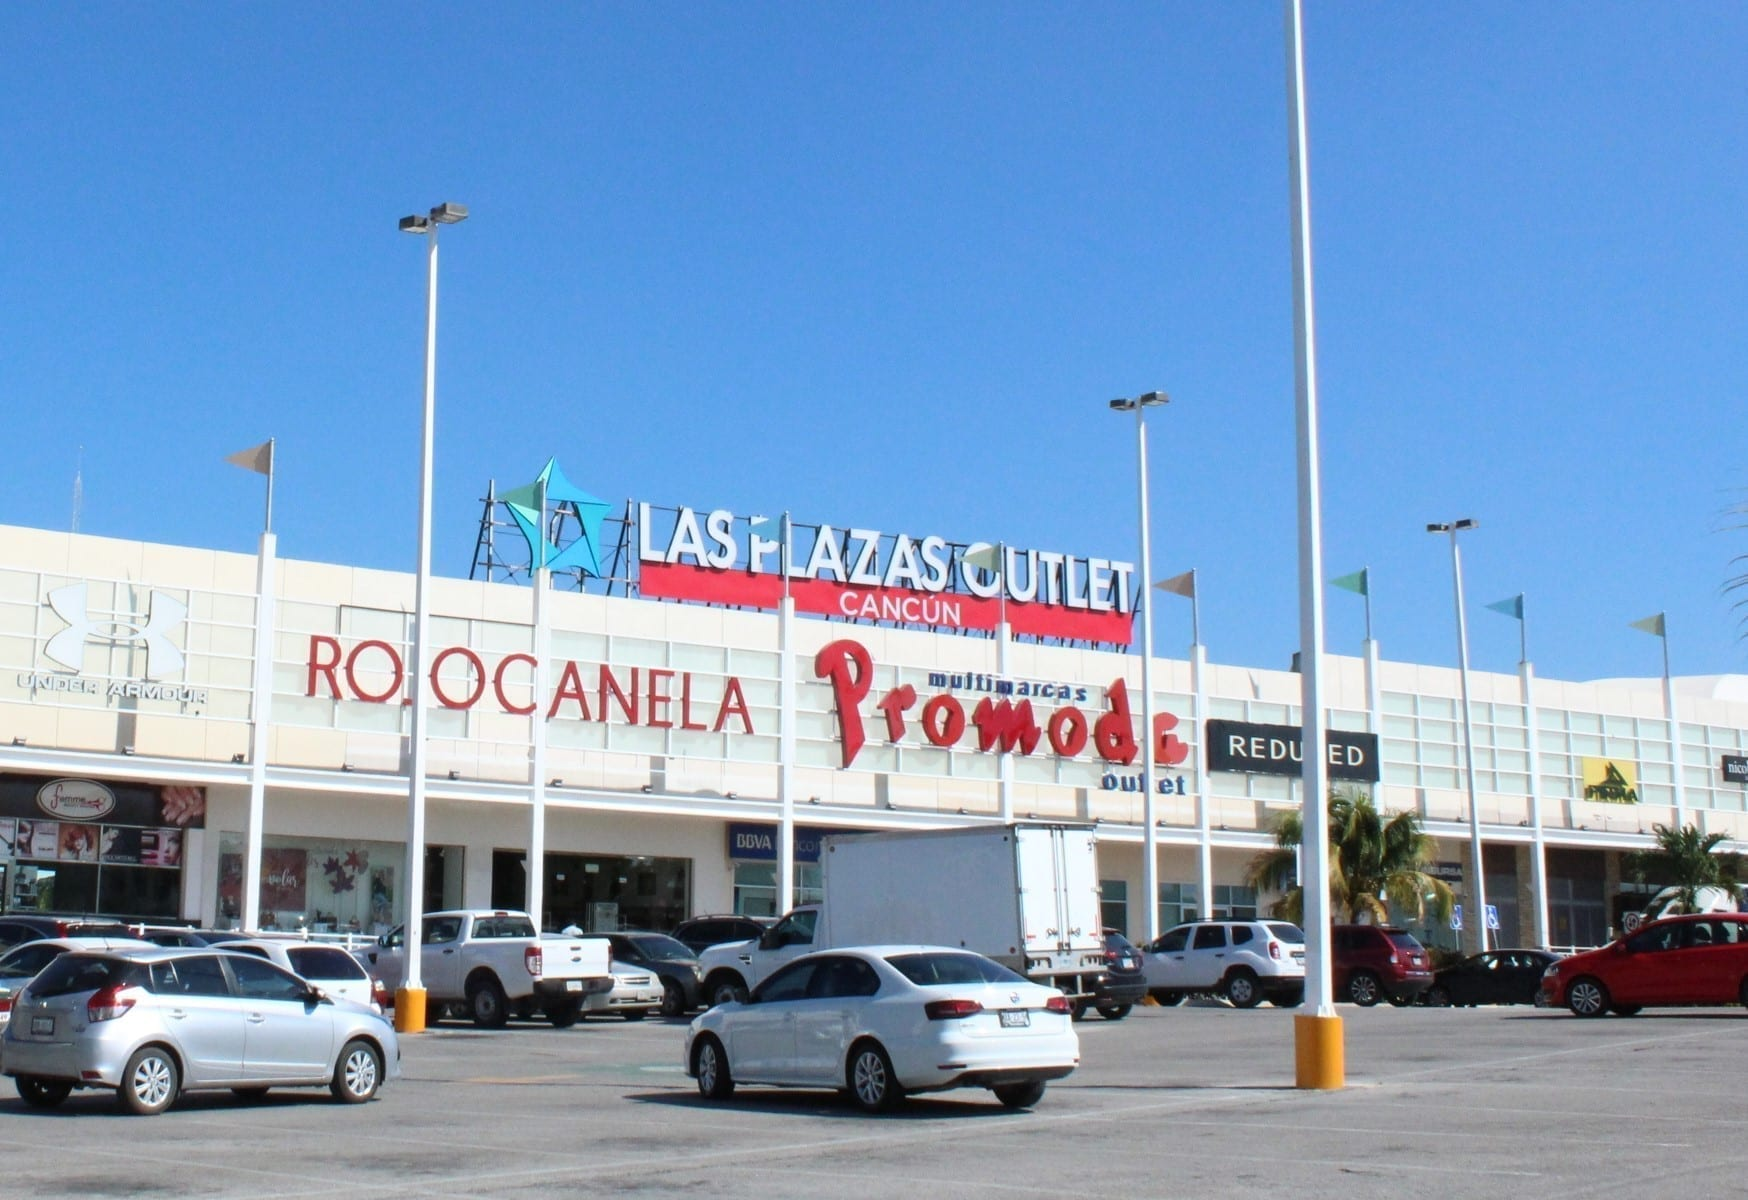 Entrada a Plazas Outlet Cancún